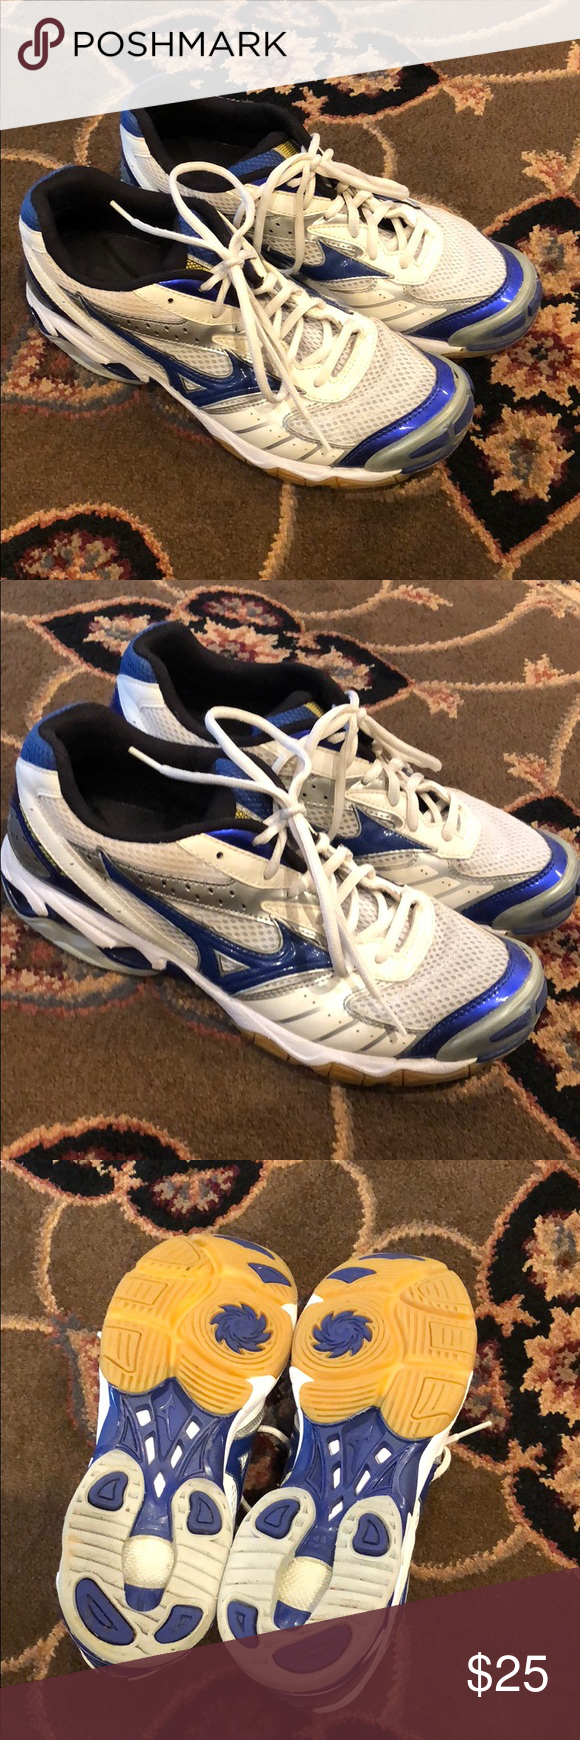 Mizuno Volleyball Shoes In 2020 Volleyball Shoes Mizuno Shoes Mizuno Volleyball